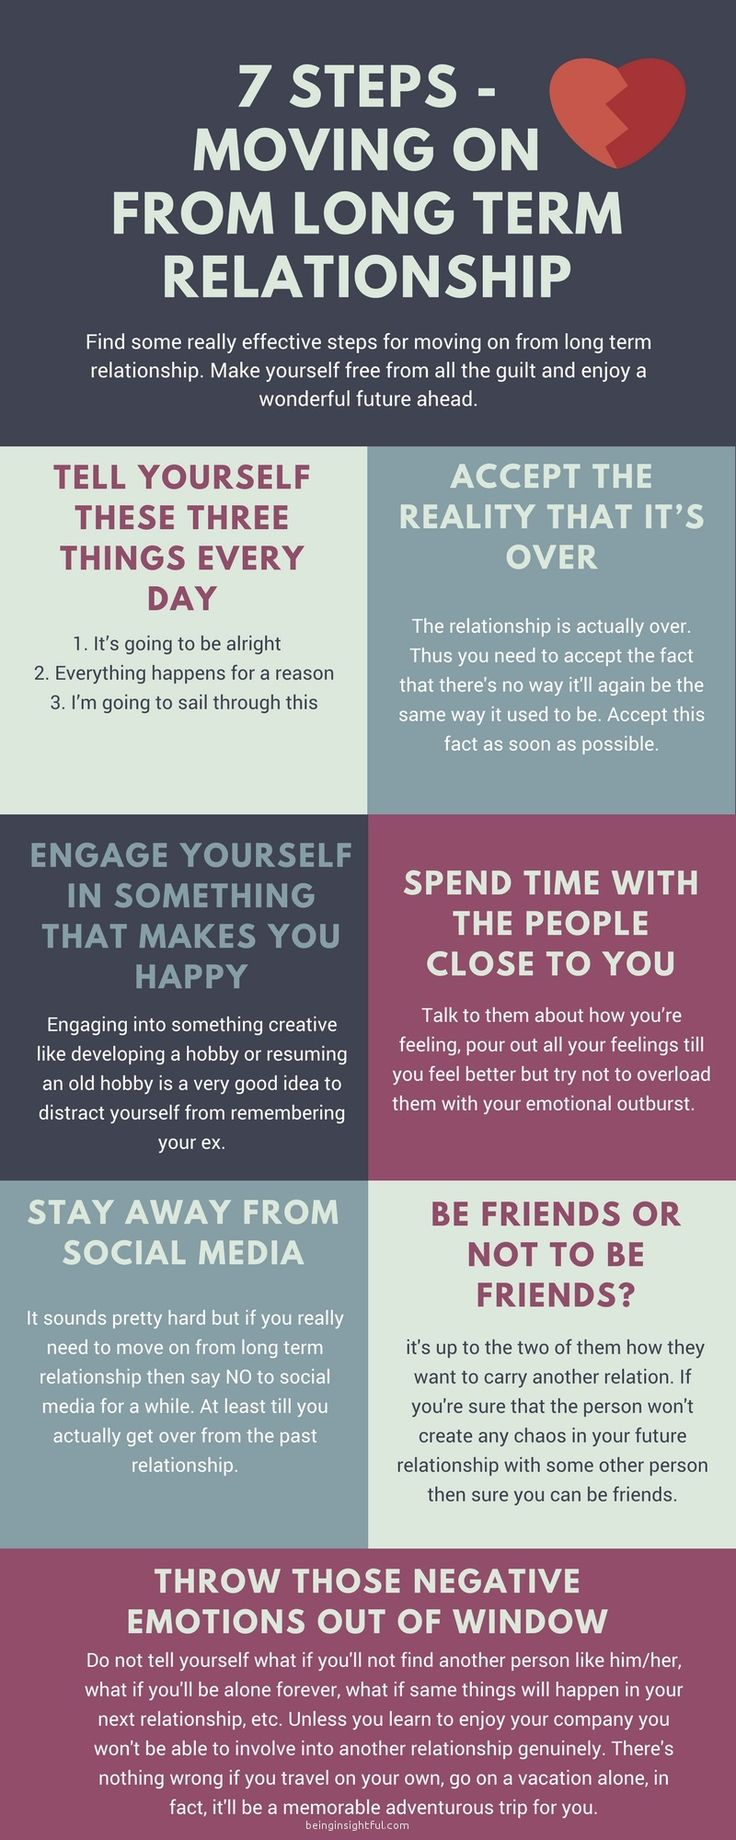 7 Steps Moving On From A Long Term Relationship - Being